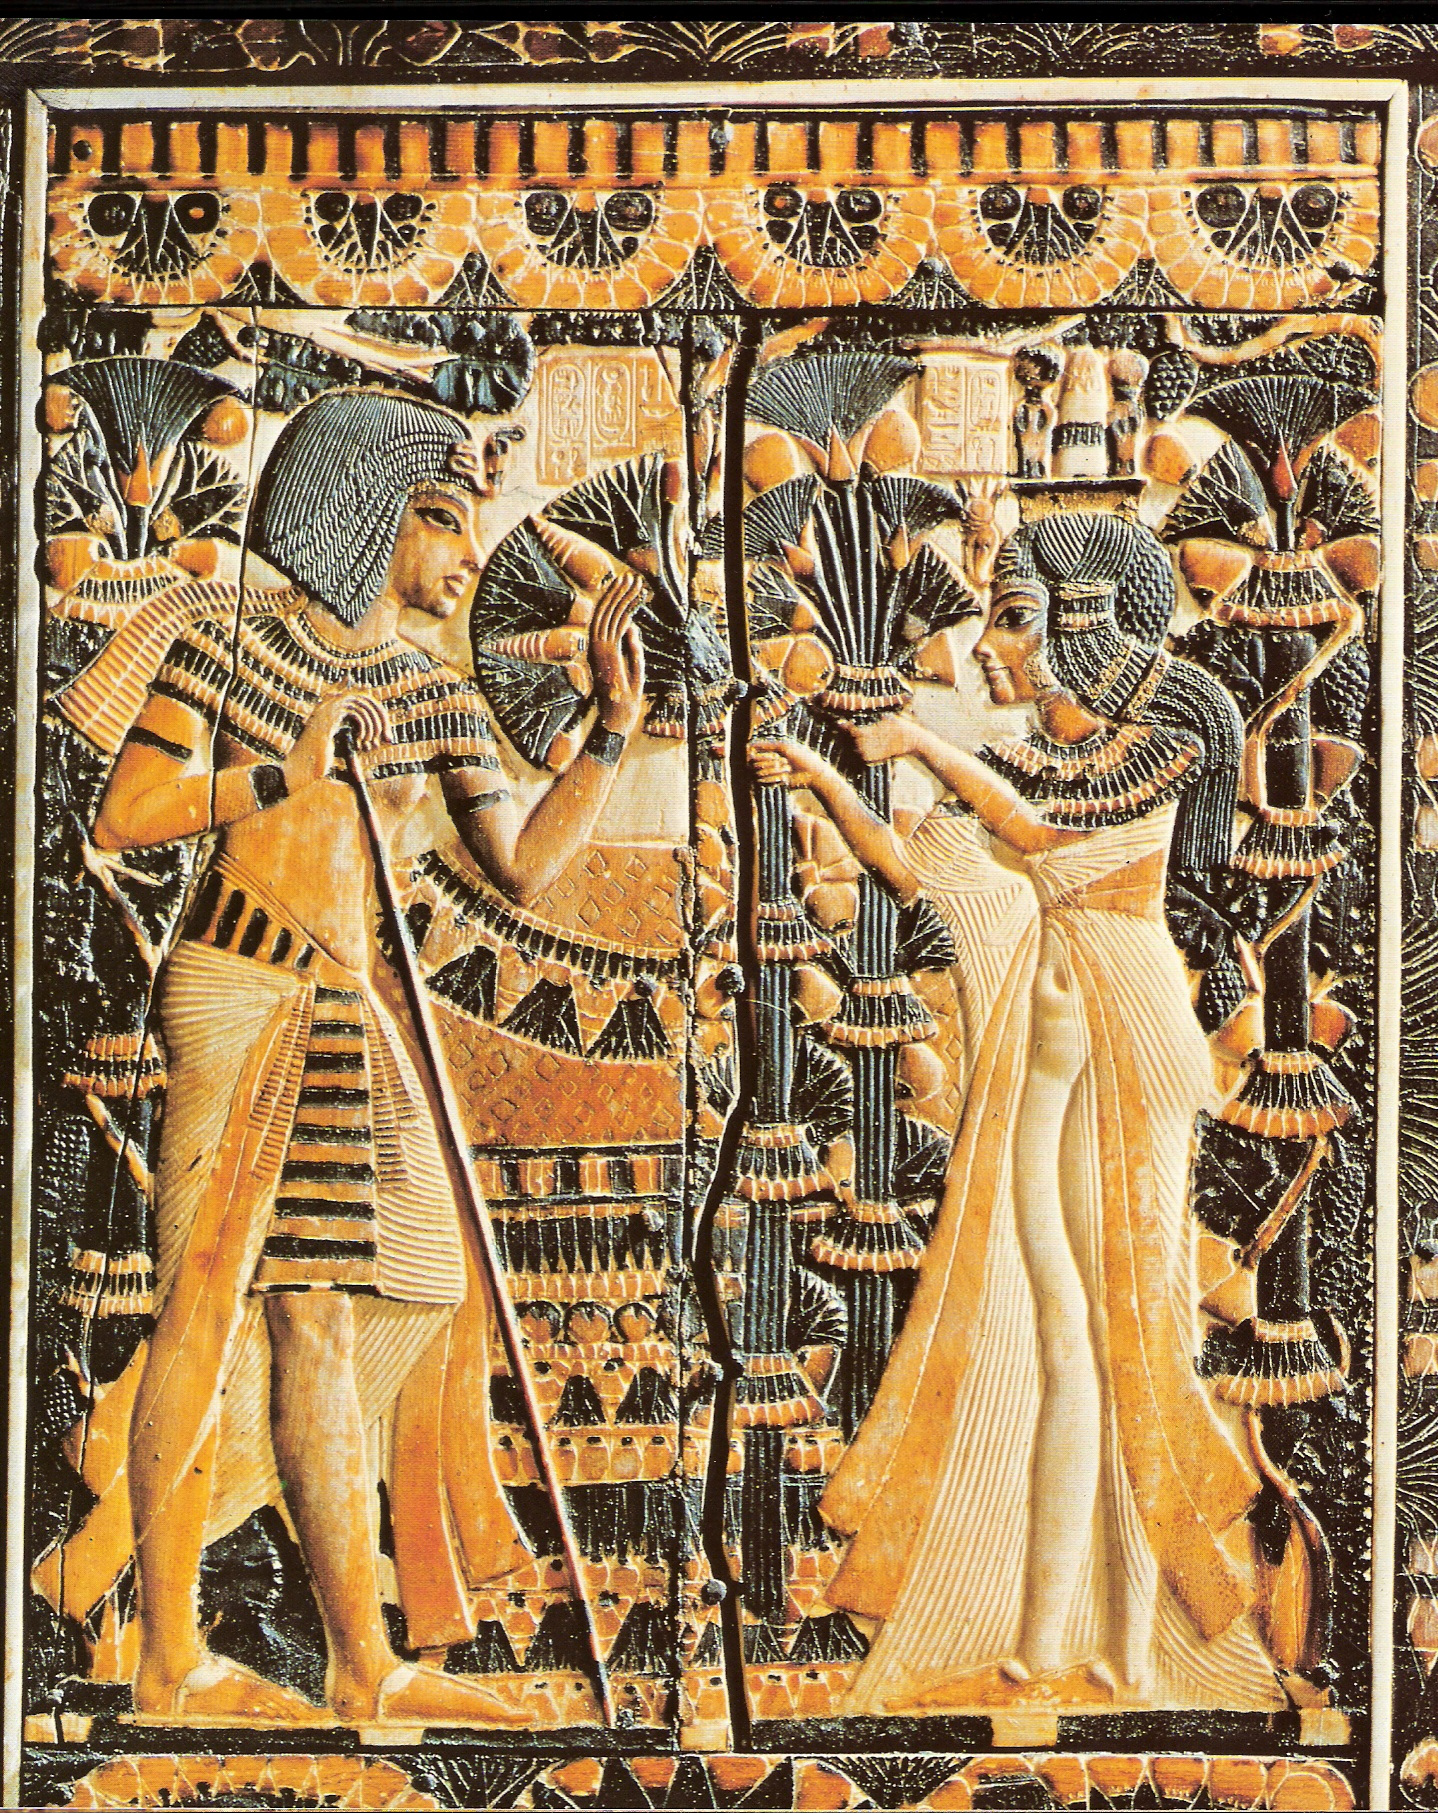 pokrywa skrzyni w grobowcu Tutenchamona, Tutenchamon otrzymuje kwiaty od żony,  Tutankhamun receives flowers from Ankhesenamun; źródło: Wikipedia